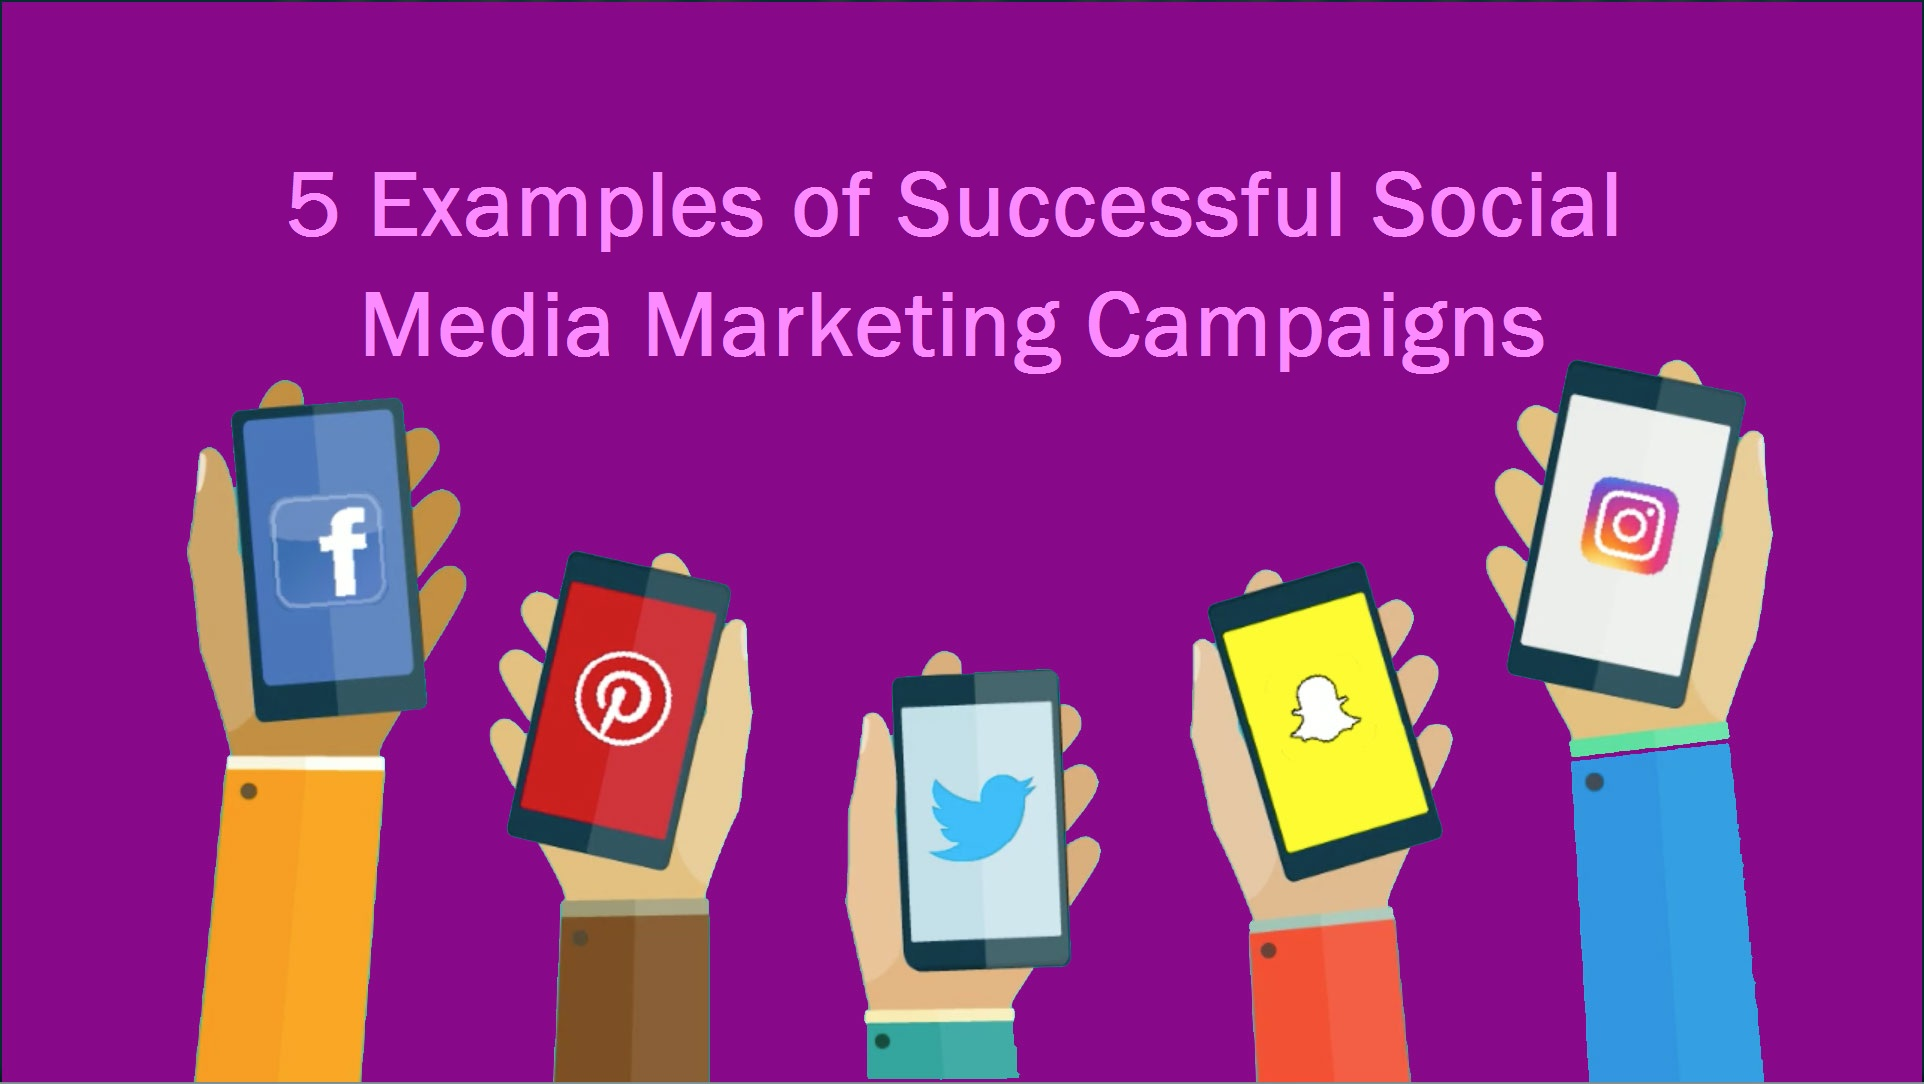 5 Examples of Successful Social Media Marketing Campaigns1